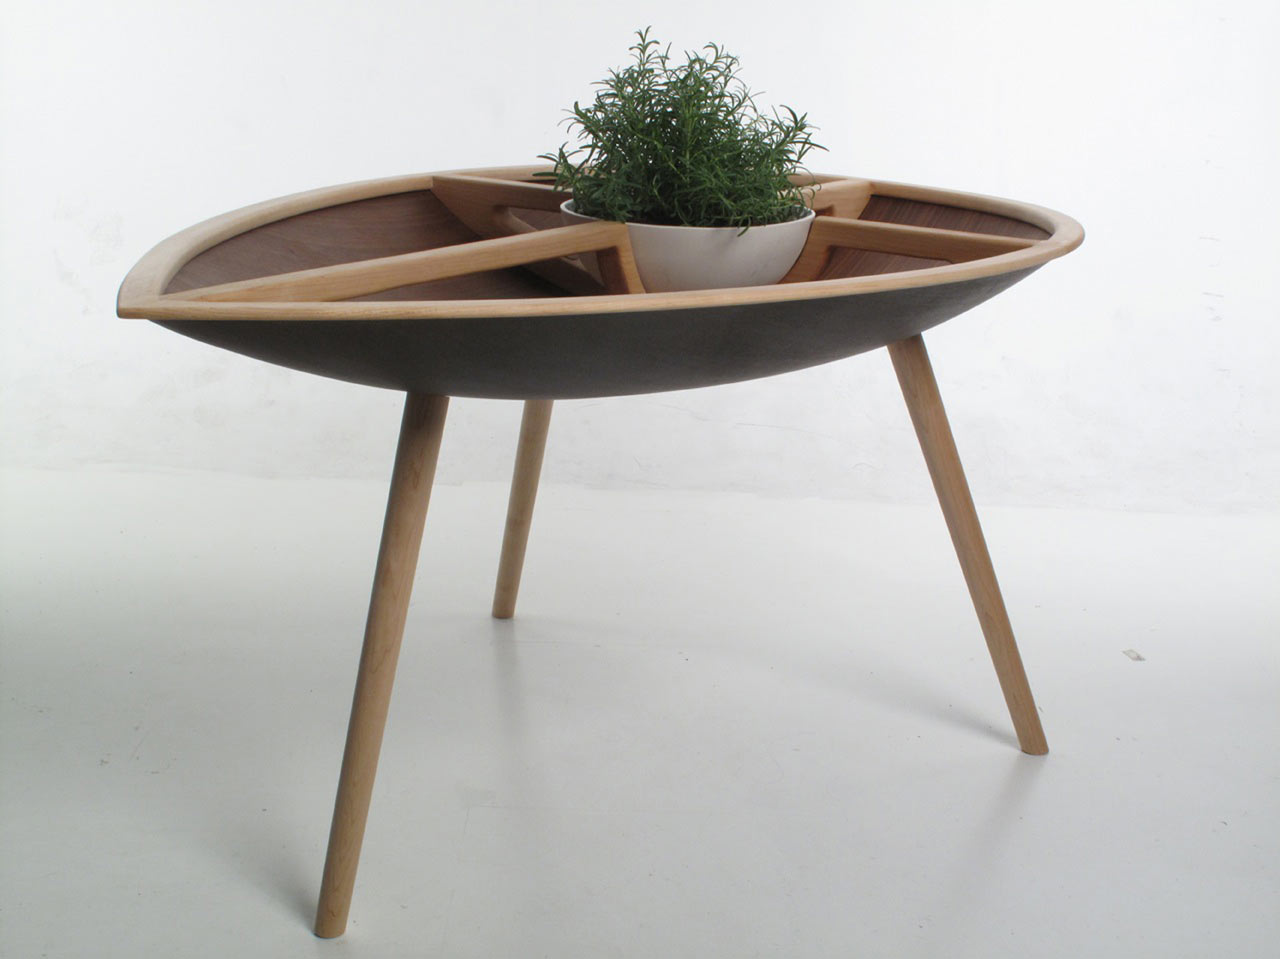 Intriguing Table And Chair Made From Well Done Handcraft Project : Unique Spire Table With Green Plant Growing In A Bowl